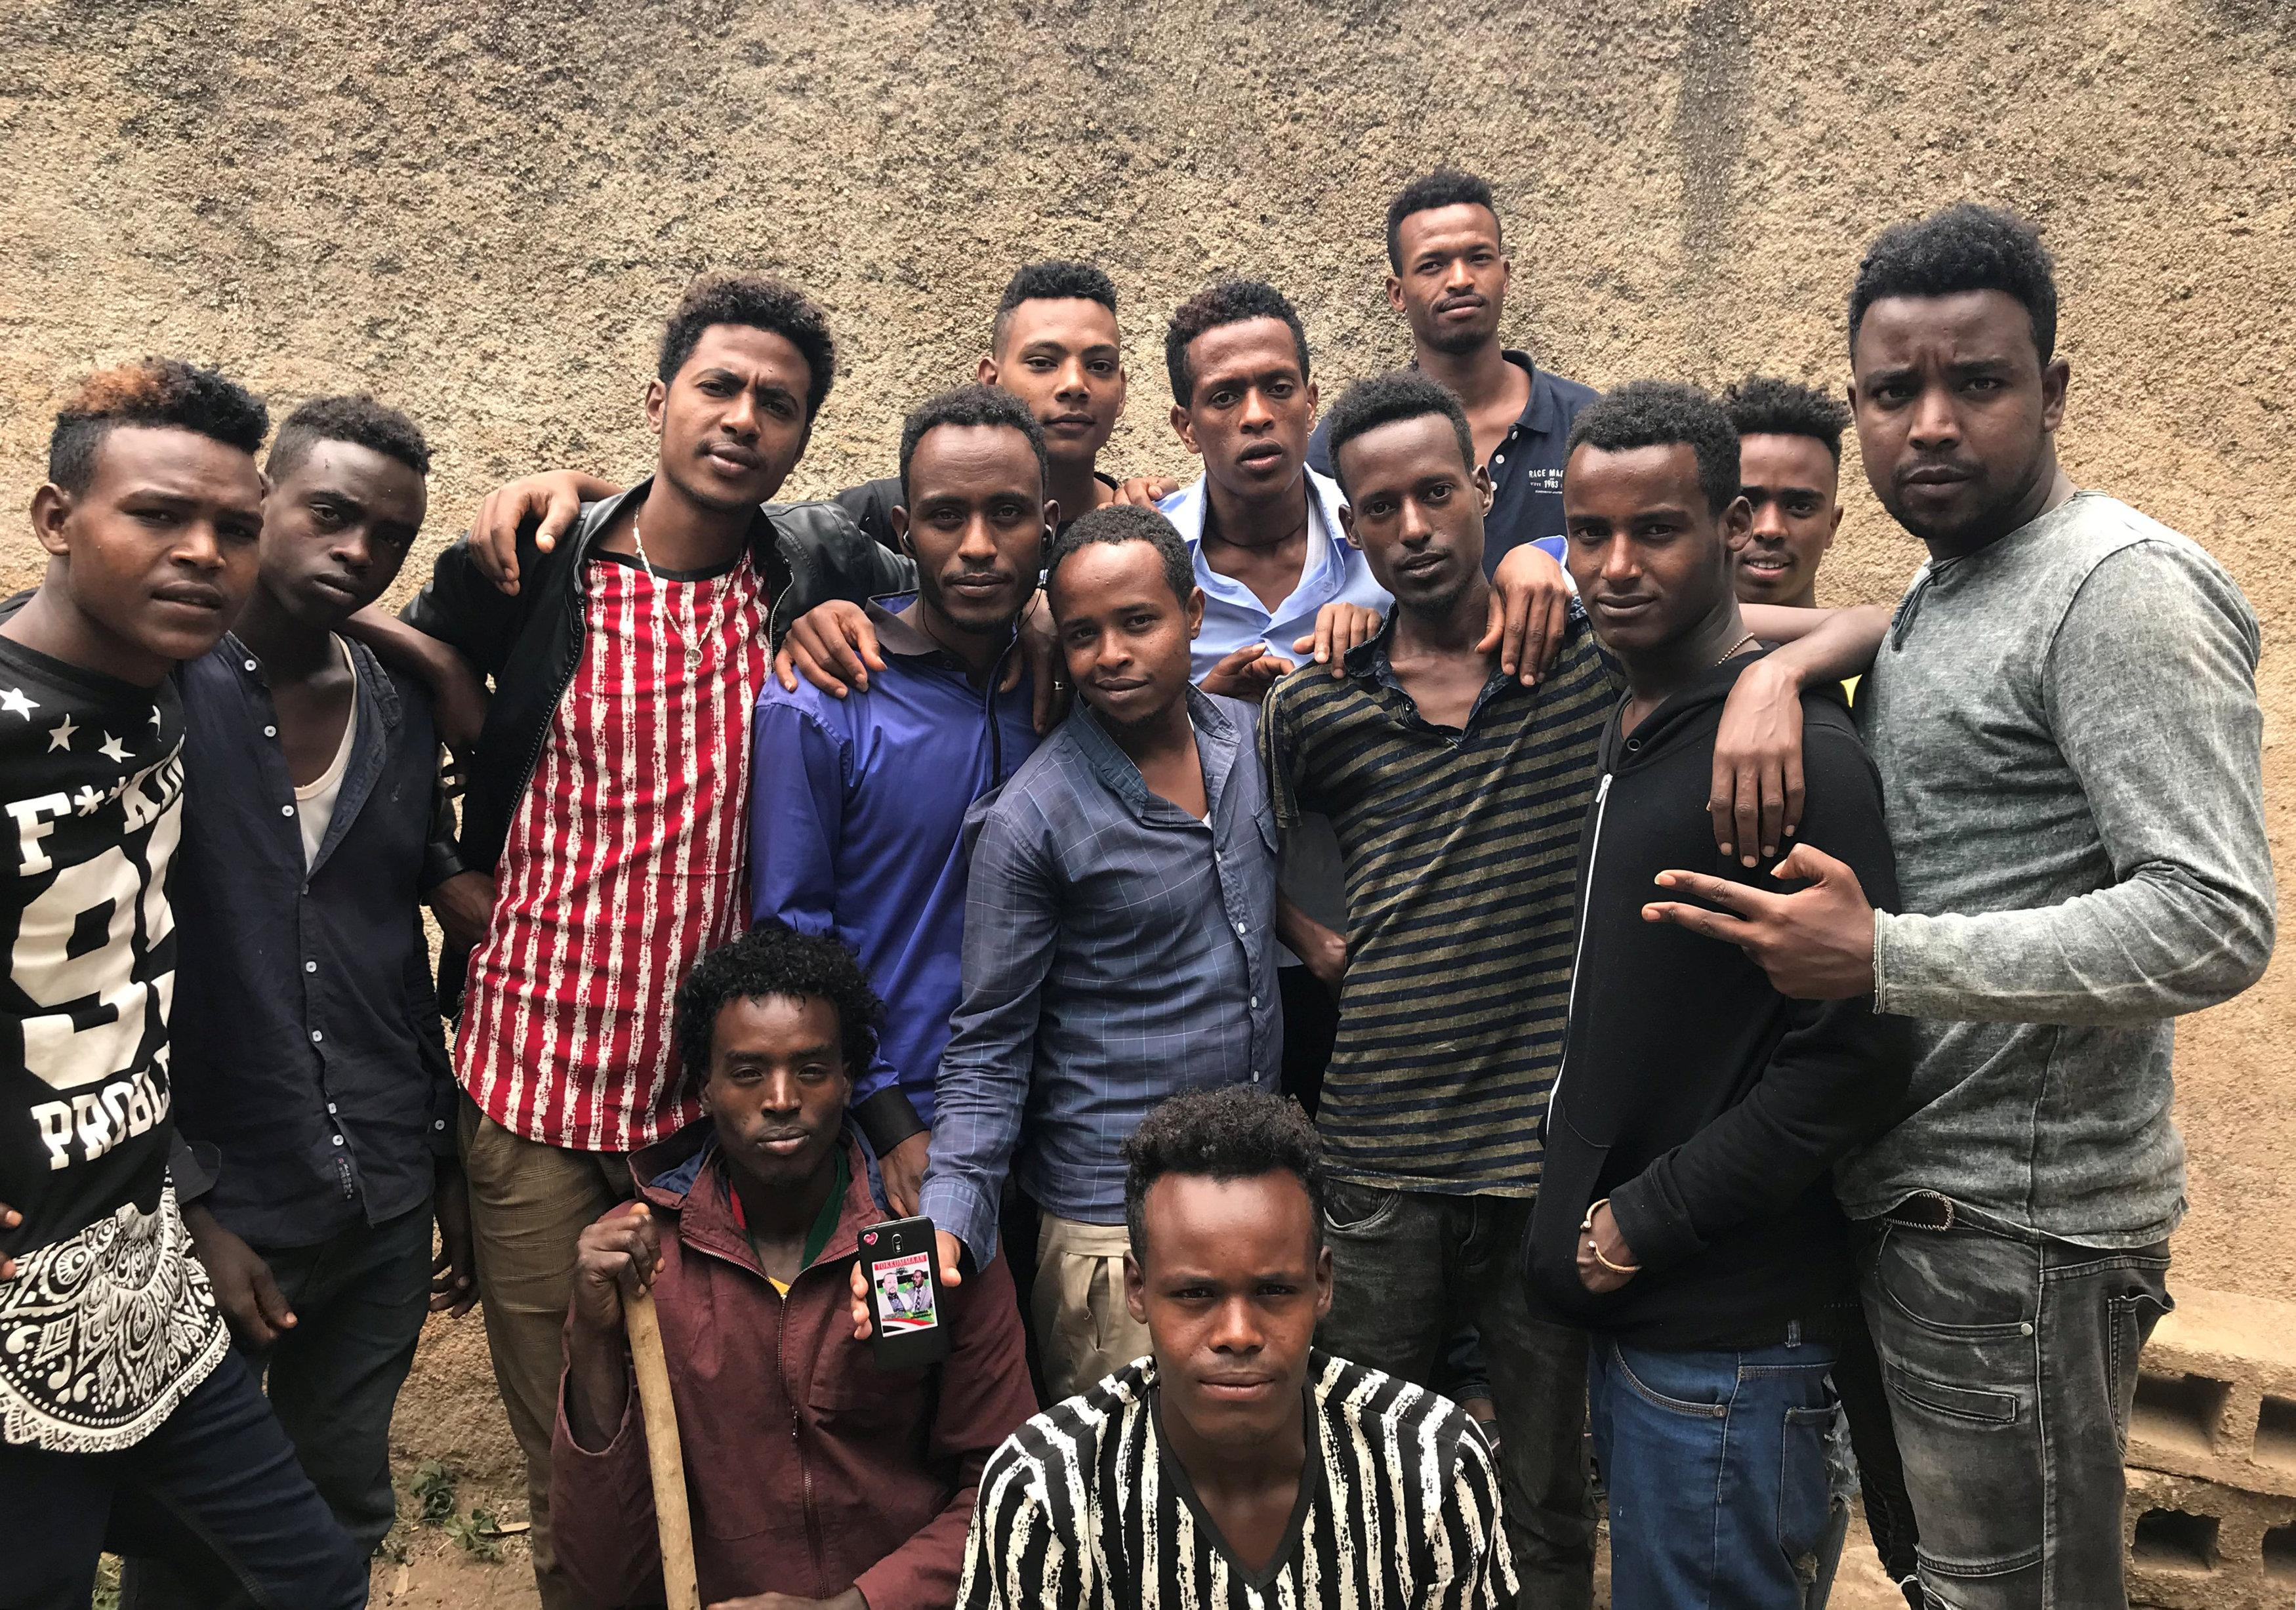 Members of the Oromo ethnic group pose for a photograph in Harar, Ethiopia July 22, 2018. Maggie Fick